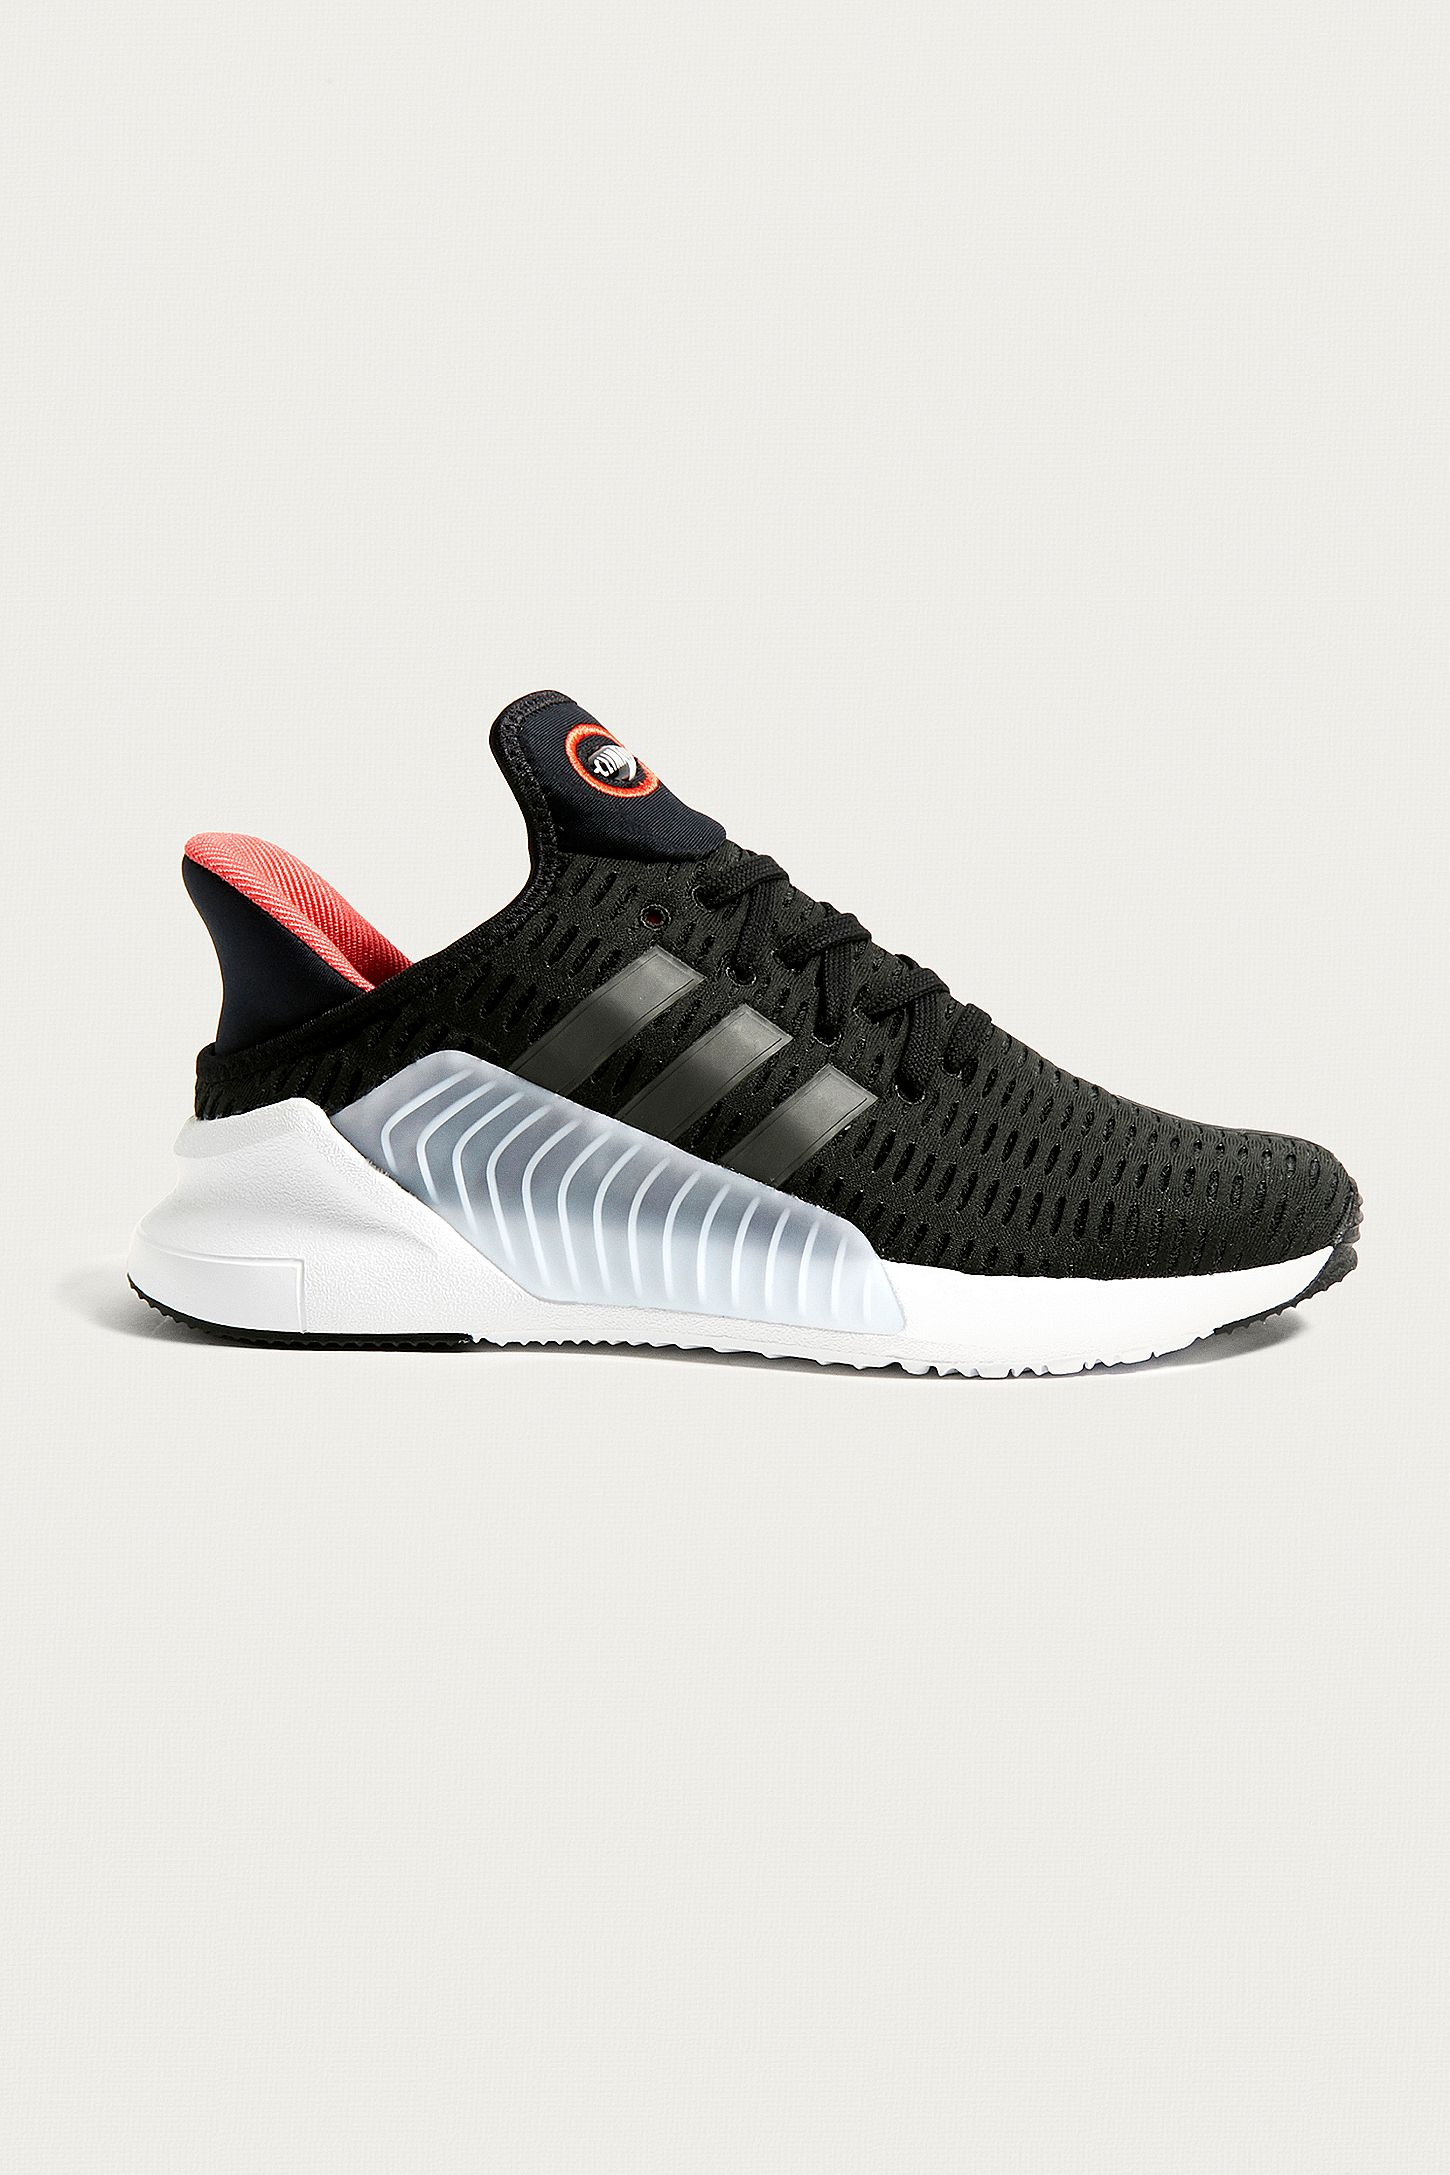 huge selection of 5d8a1 11945 adidas Originals Climacool 02 17 Black and White Trainers. Click on image  to zoom. Hover to zoom. Double Tap to Zoom